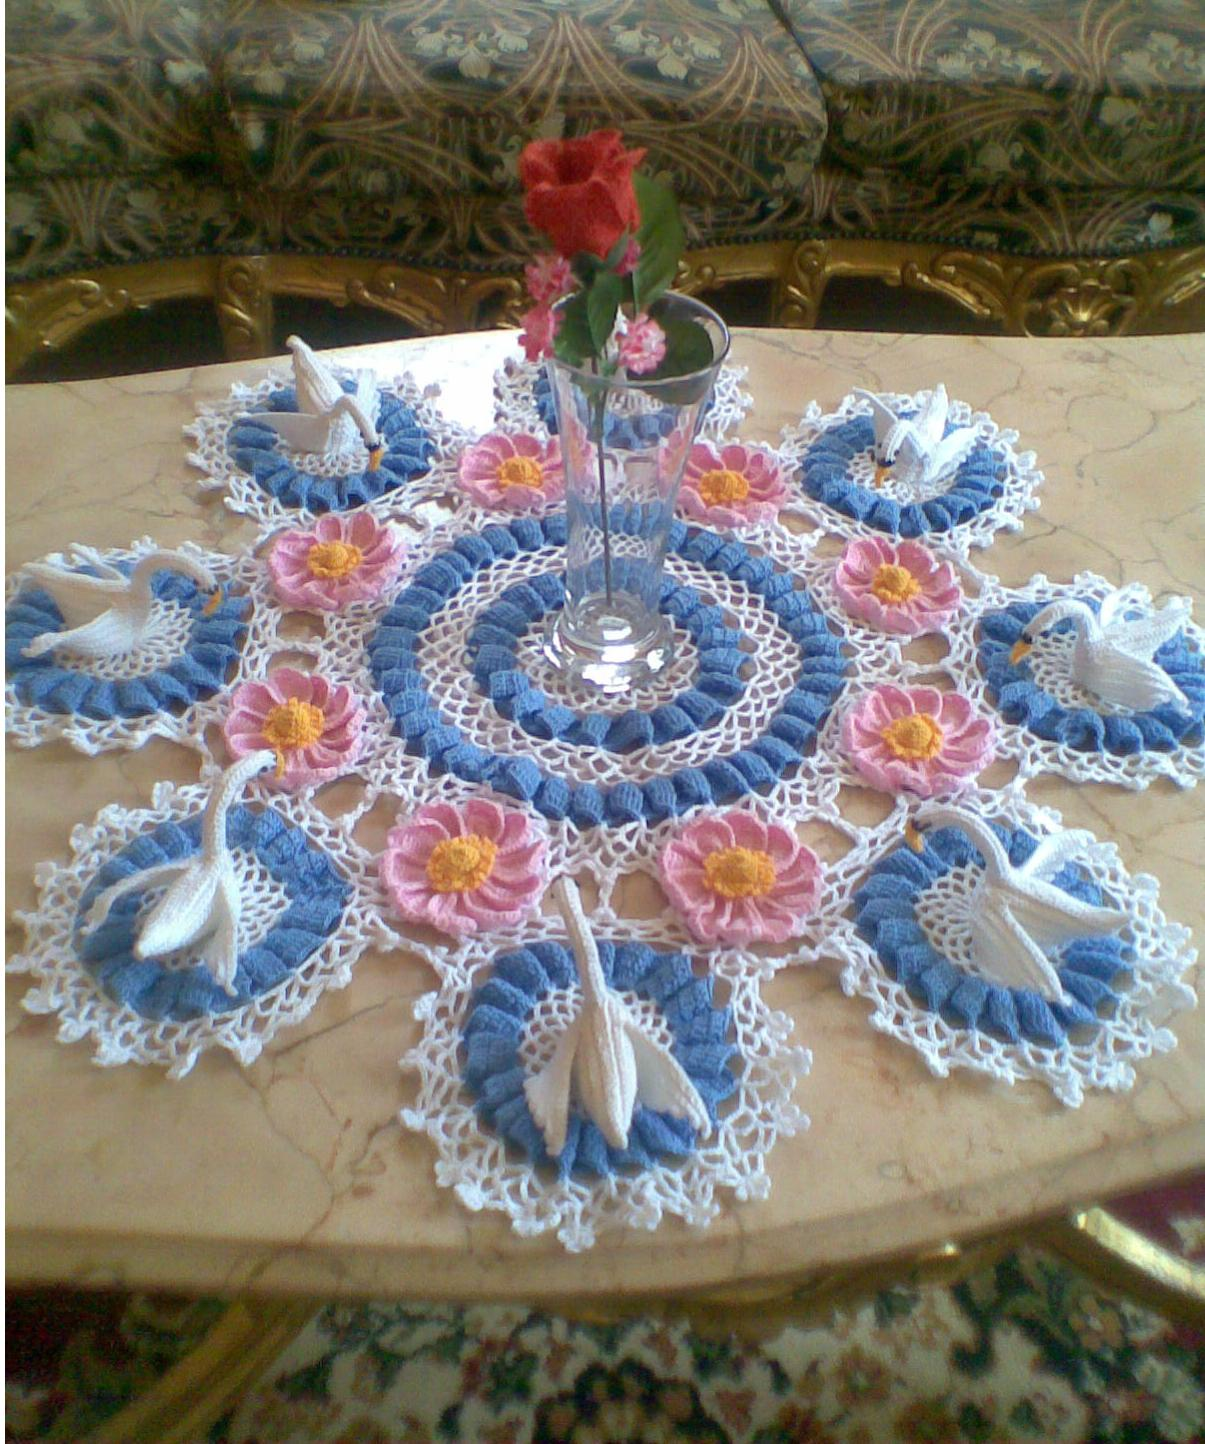 Free crochet spiral doily pattern manet for crochet doily spiral crochet learn how to crochet bankloansurffo Gallery